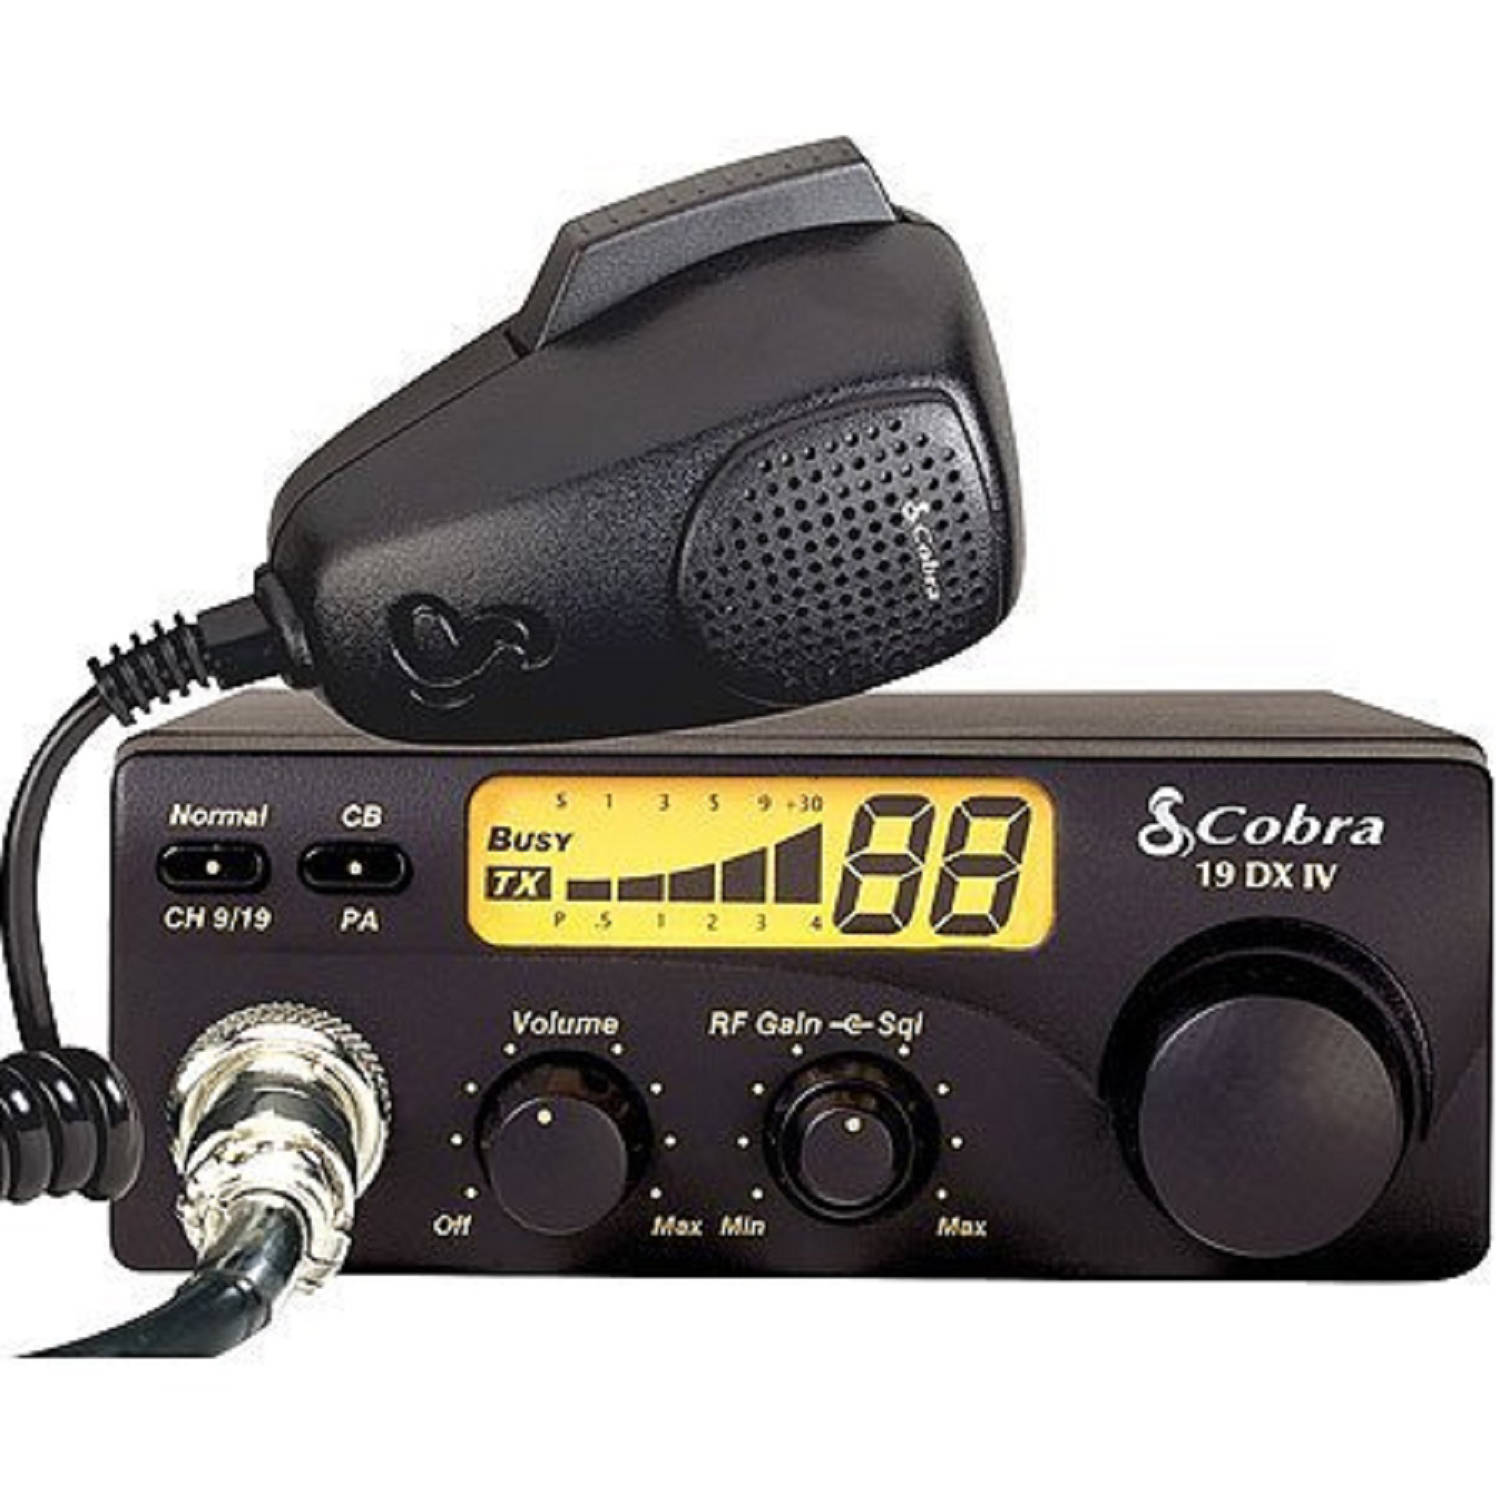 Cobra 19 DX IV CB Radio, Compact, 40 Channel, 4 Watt